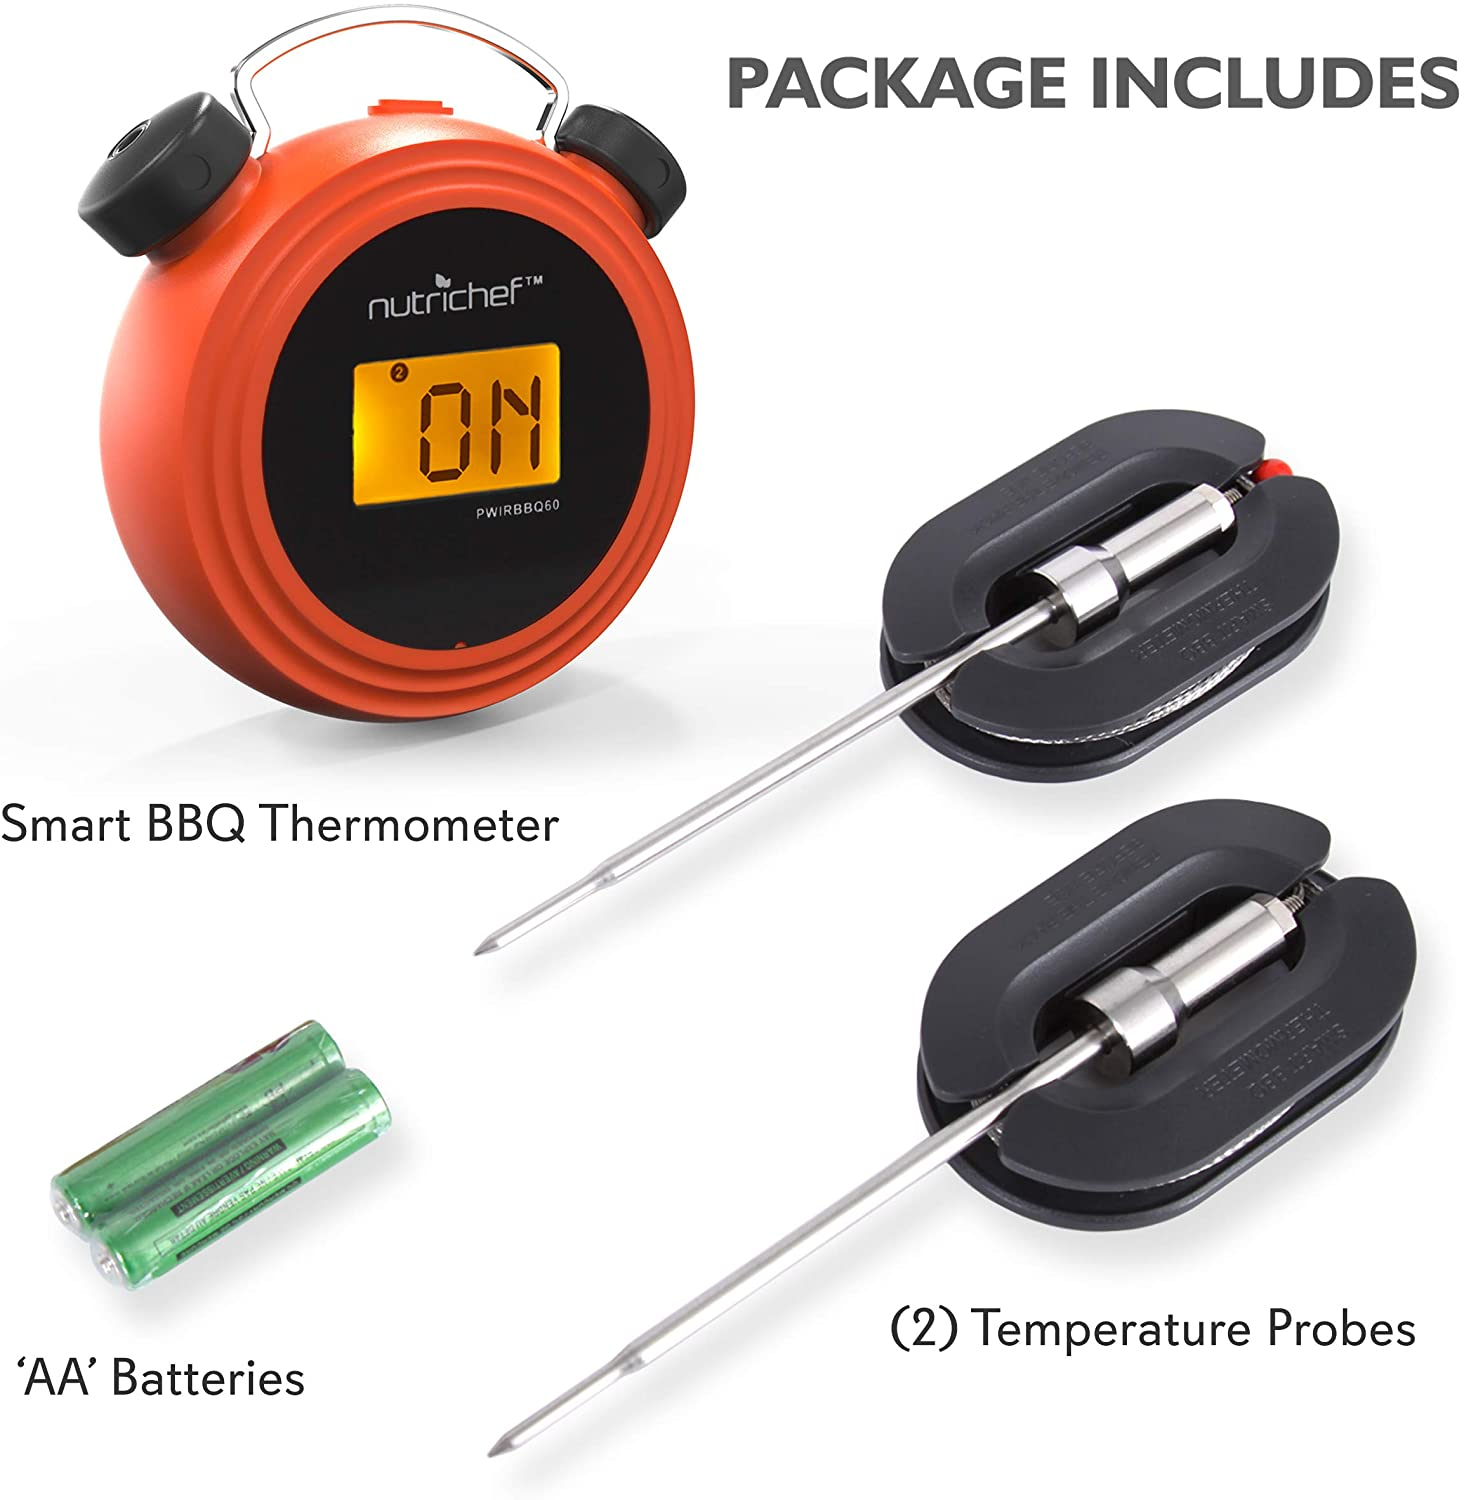 NutriChef Smart Wireless Thermometer package items